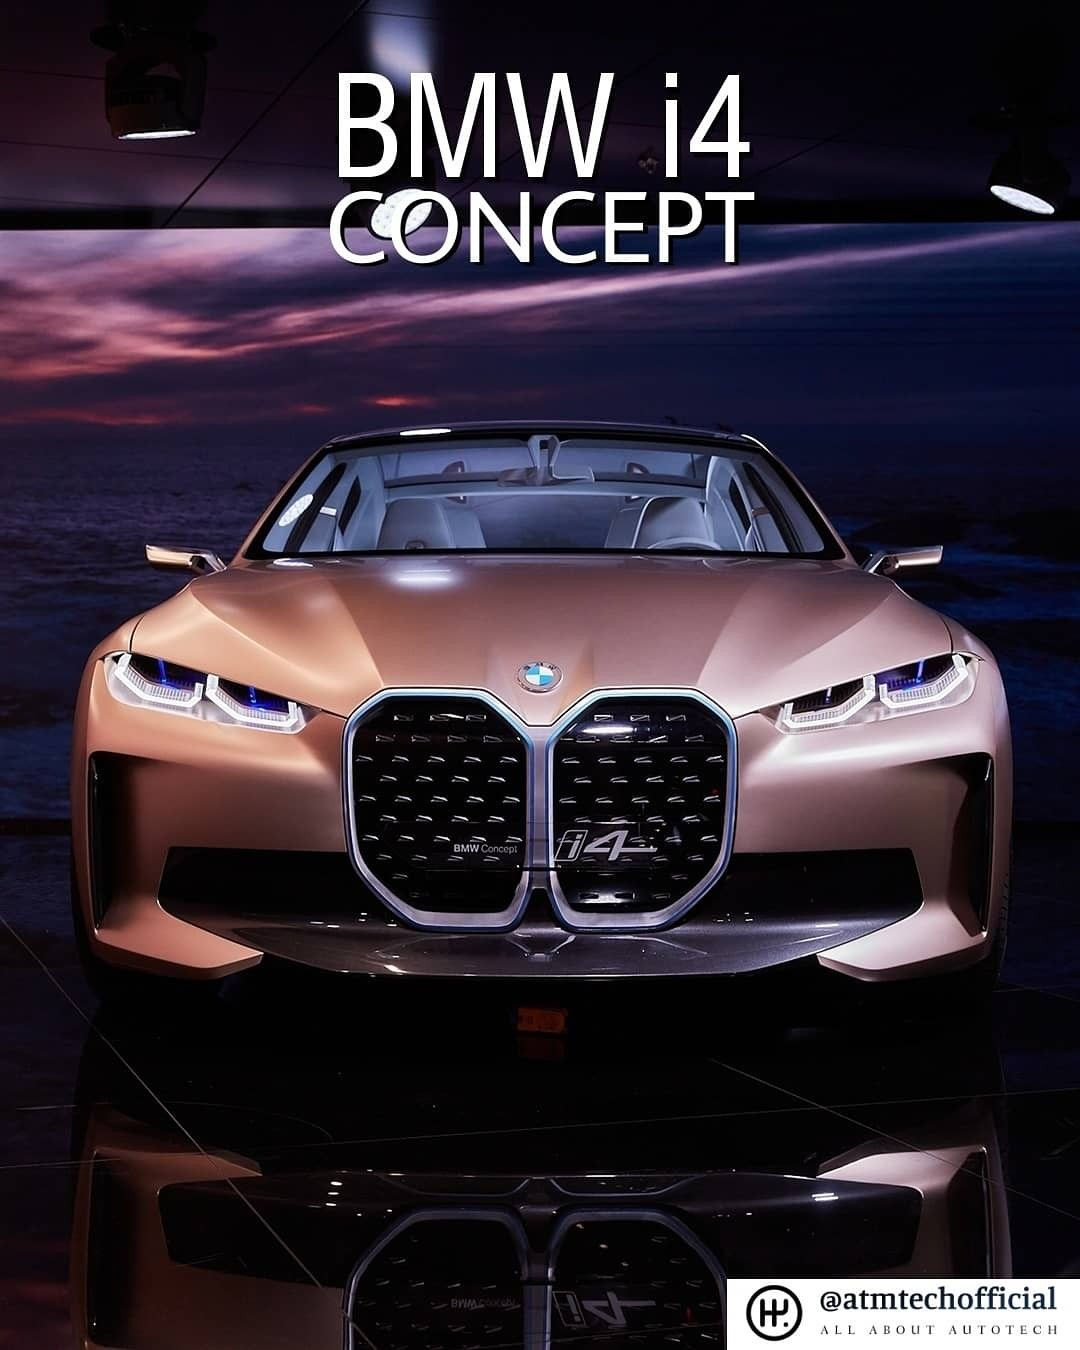 The elegant design of BMW i4 concept is mesmerizing. Bmw has been one of the best in terms of design. The i4 concept was showcased in #AutoChina2020 . . #autochina #autoexpo #bmw #conceptcars #carsofinstagram #amazingcars247 #design #electriccar #allelectric #atmtechofficial #atmtechedits #automotivesandtechnology